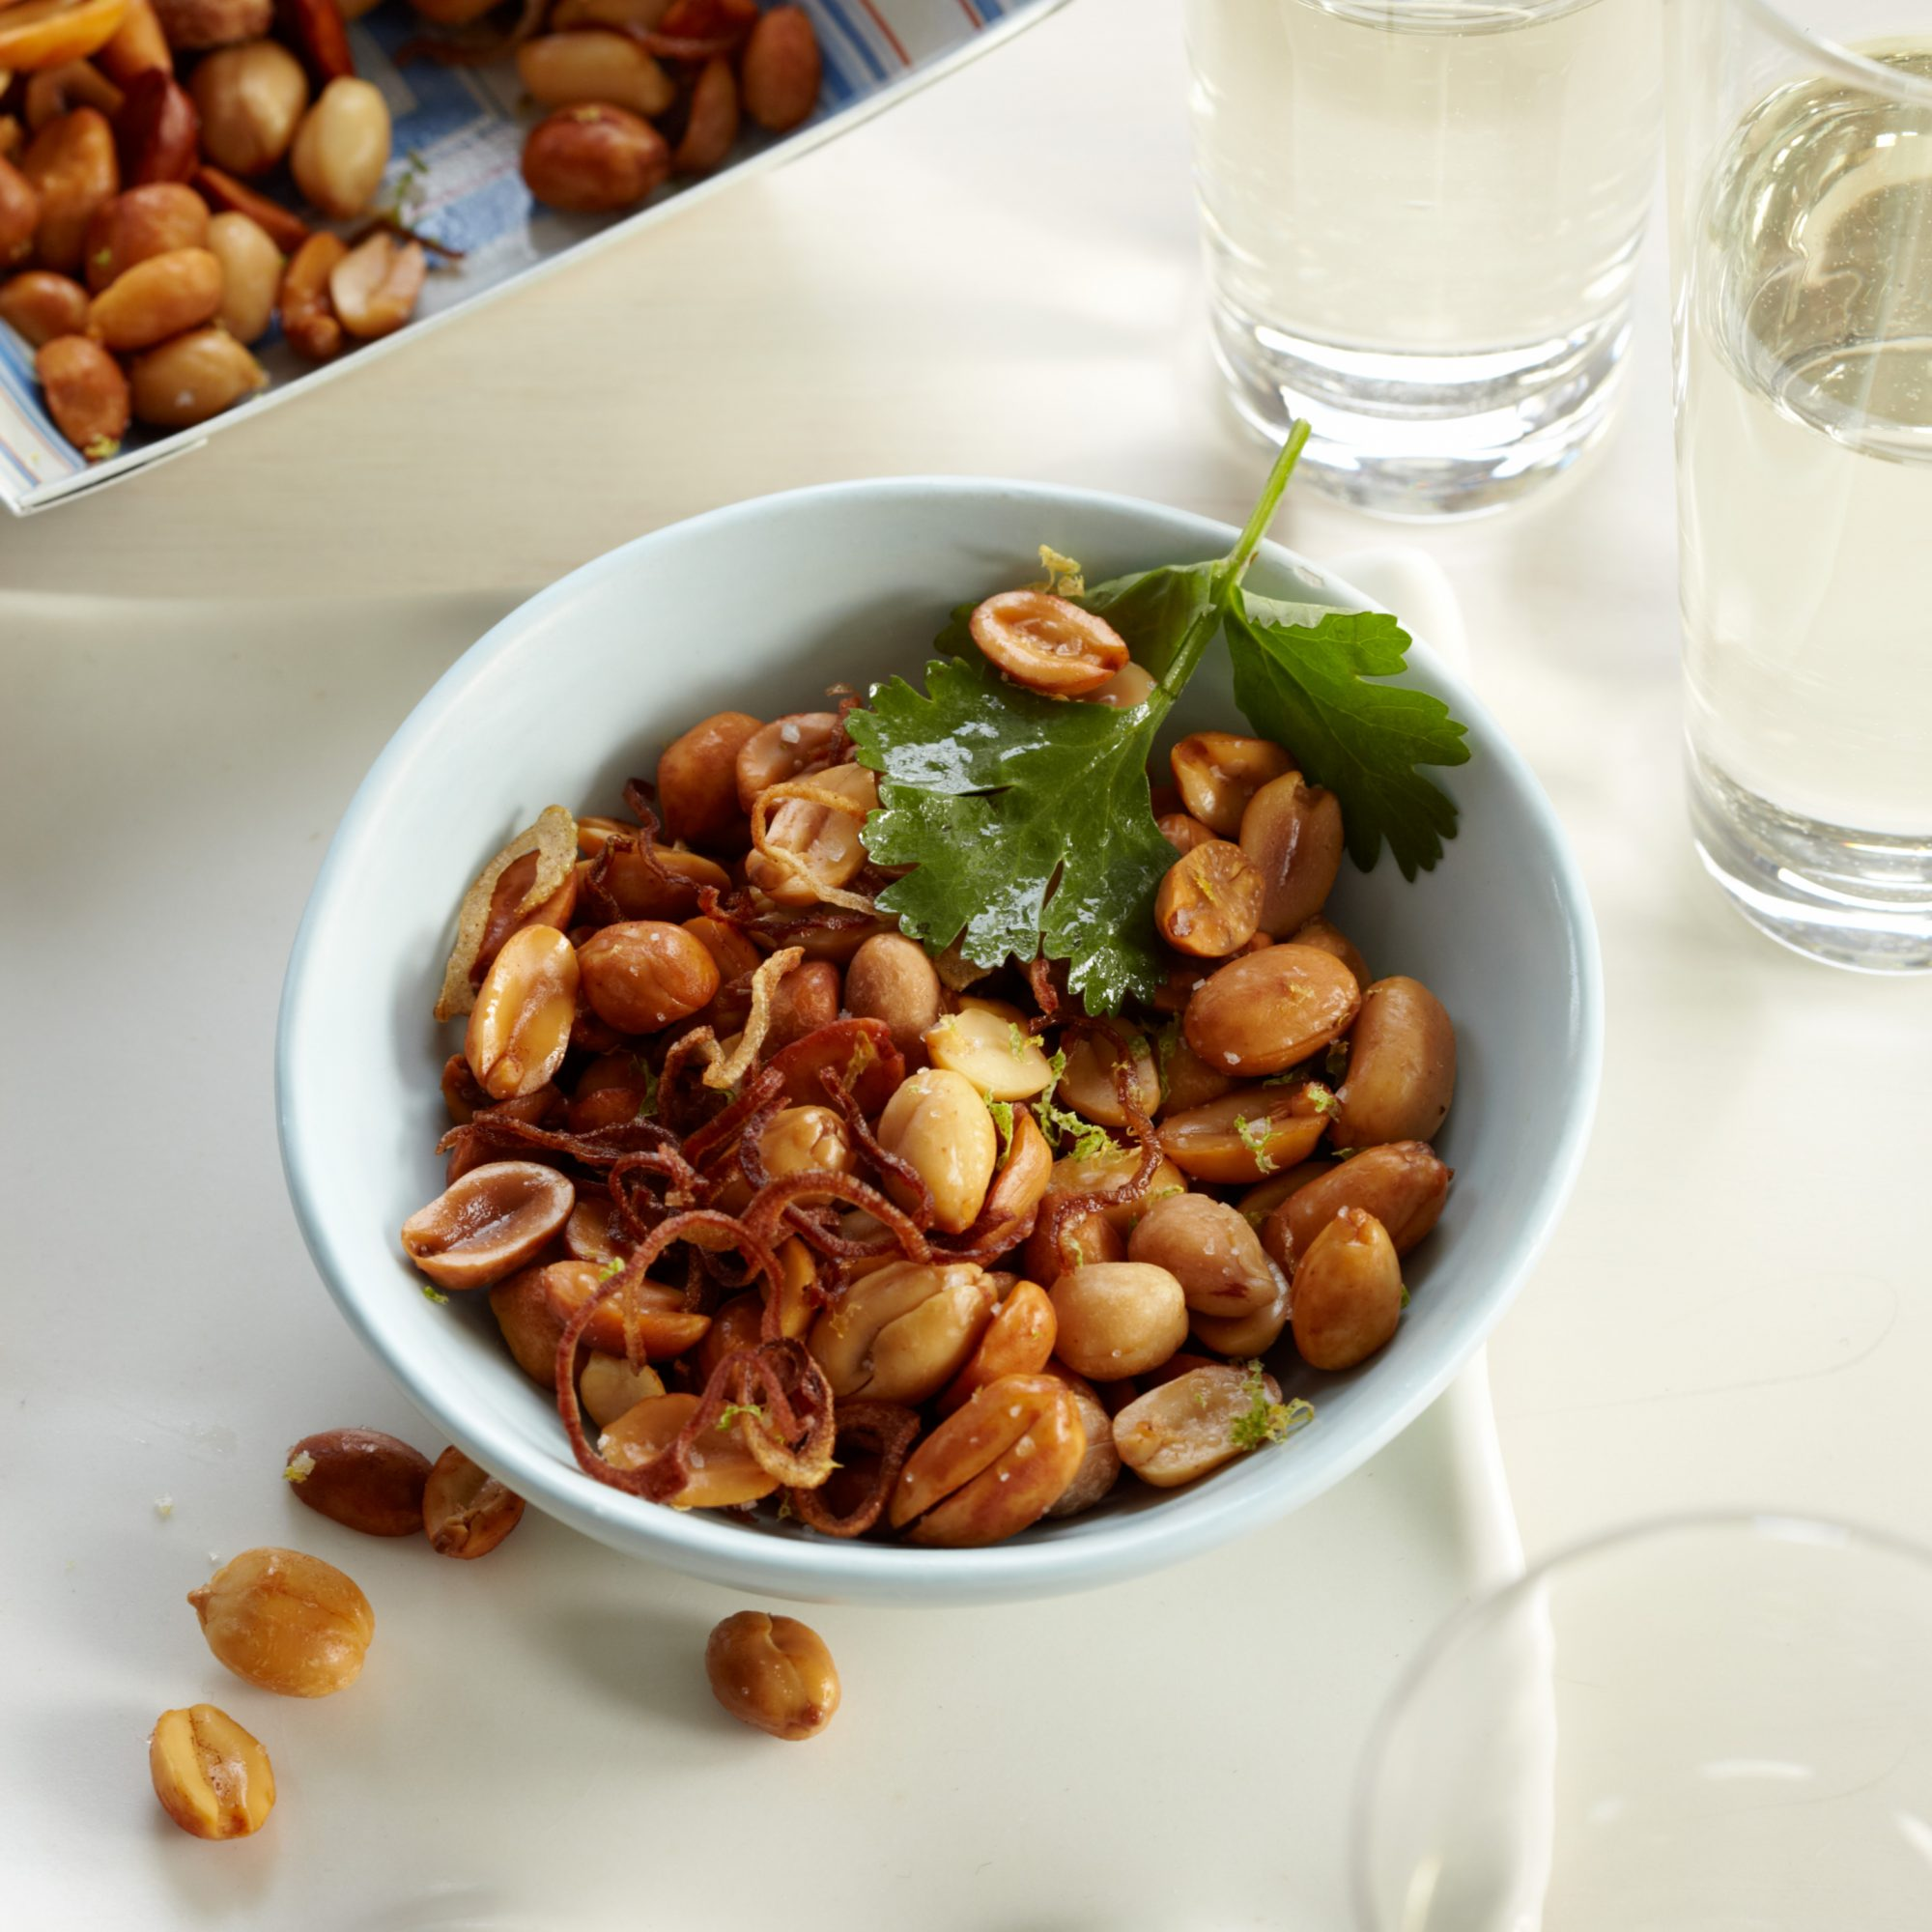 201012-r-asian-fried-peanuts1.jpg